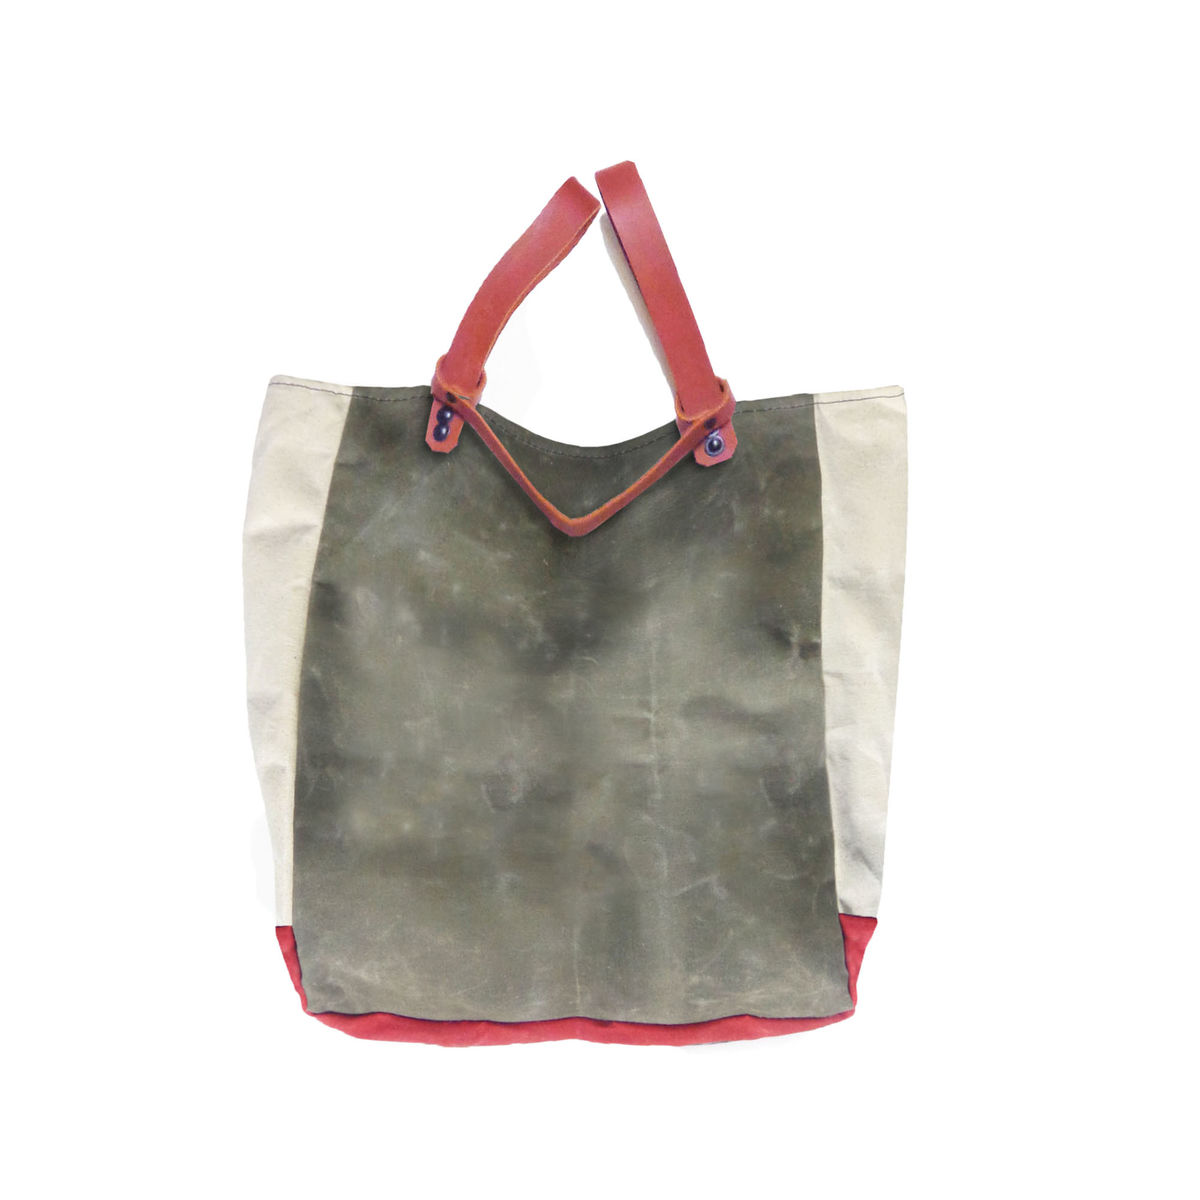 Convertible Bodega Tote, Backpack - Safari - product images  of